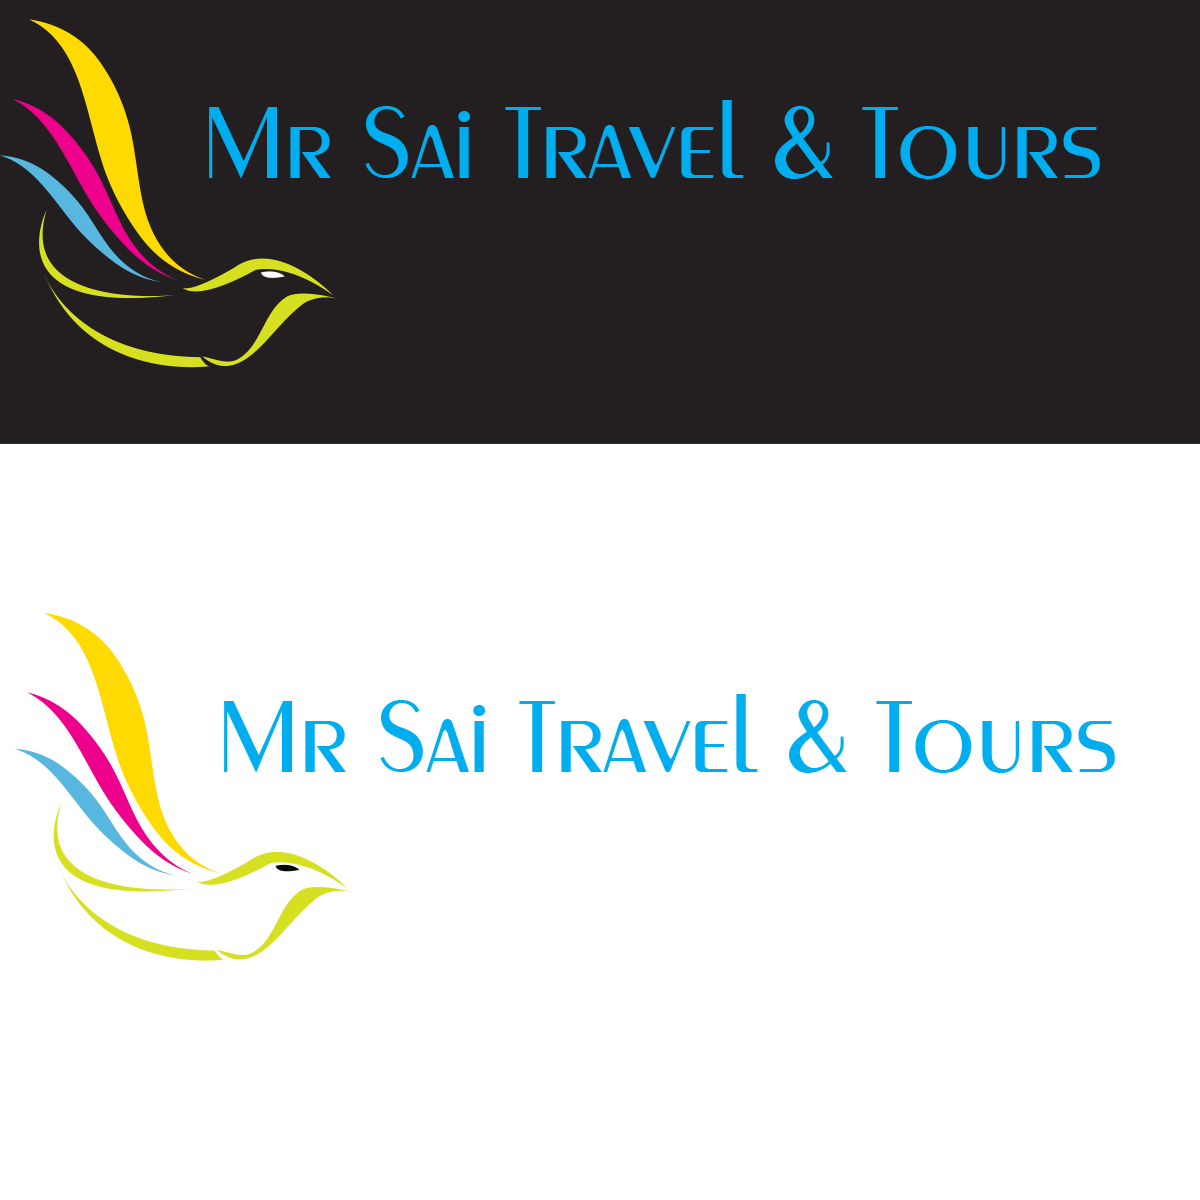 Modern colorful tourism logo design for mr sai travel for Logo creation wizard